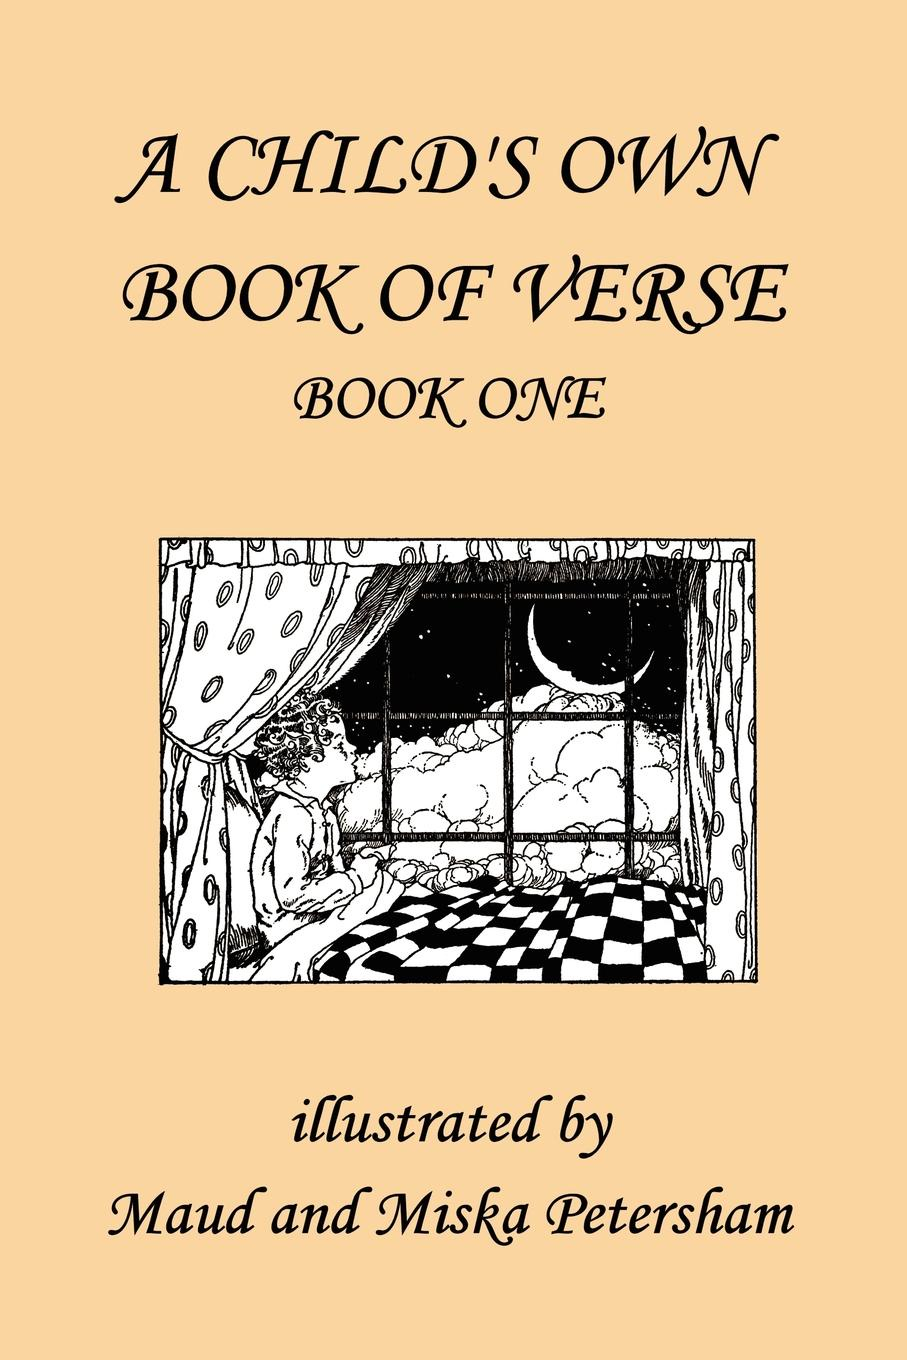 A Child's Own Book of Verse, Book One